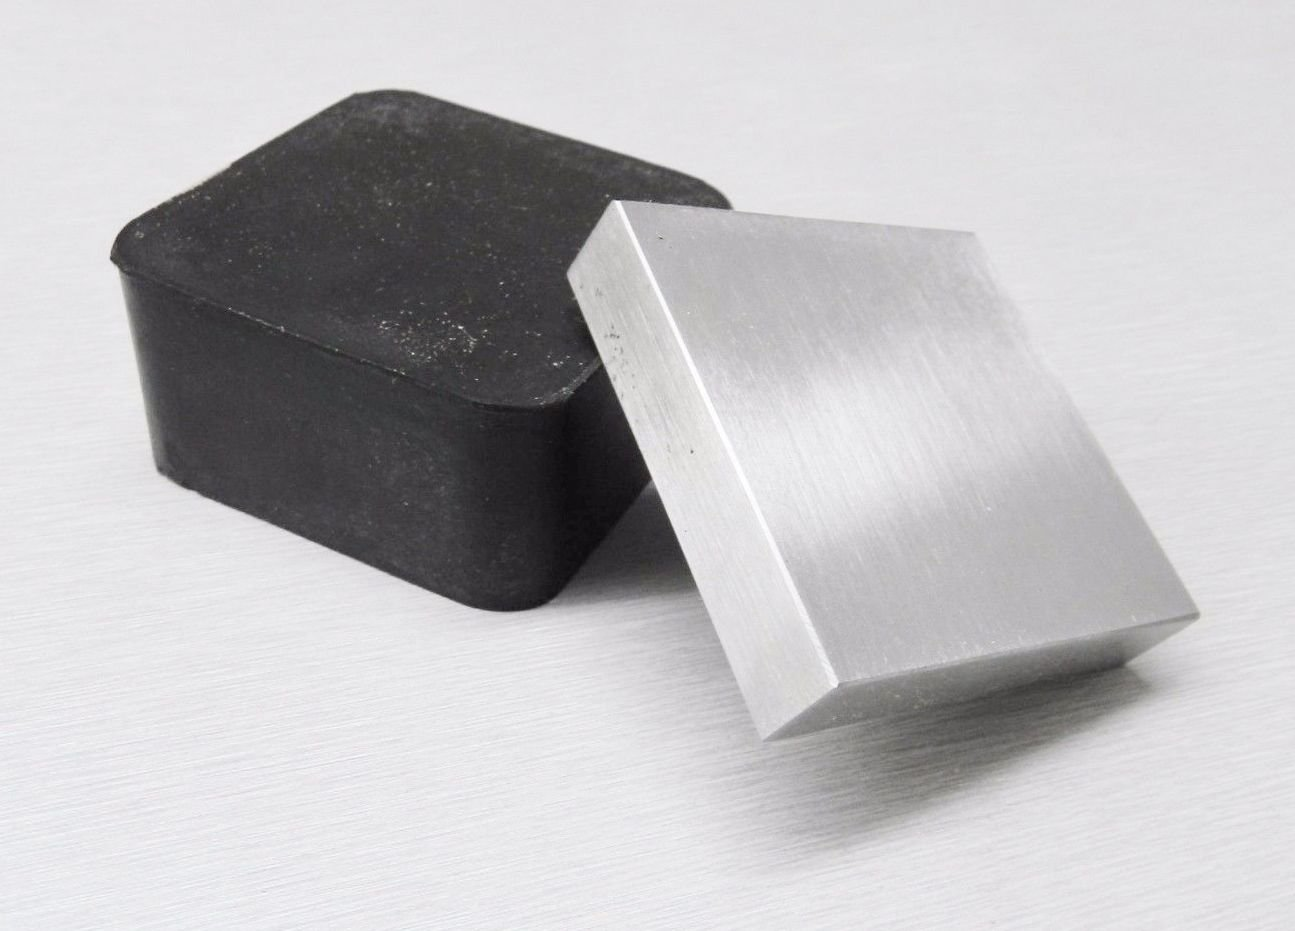 2'' RUBBER& STEEL BLOCK BENCH ANVIL 2Pc COMBO JEWELRY STAMPING FORMING DAPPING (11 E)